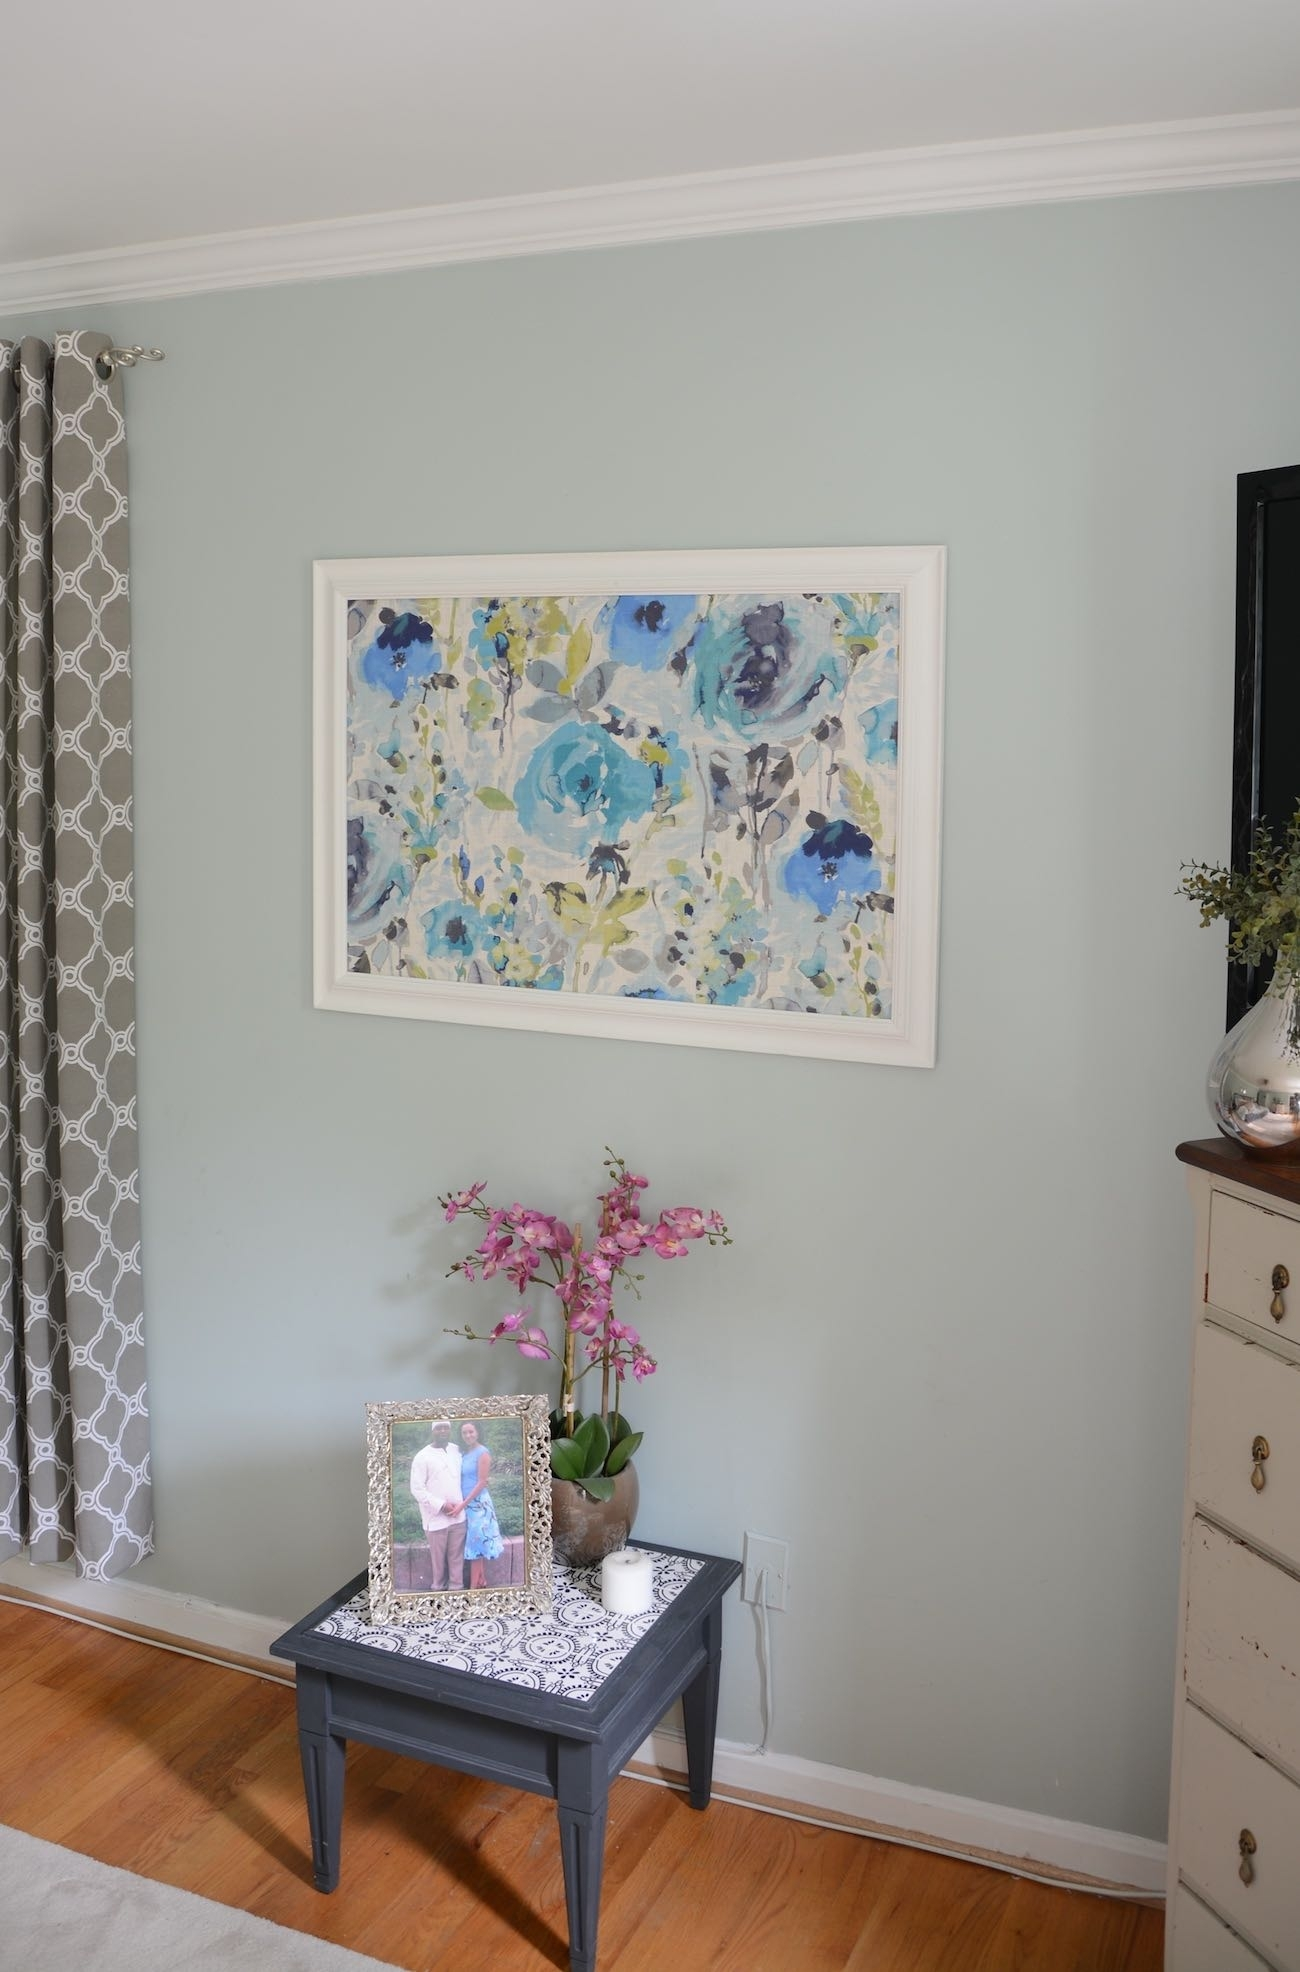 How To Frame Fabric For Wall Art With A Picture Frame With Regard To 2018 Fabric Covered Frames Wall Art (View 11 of 15)